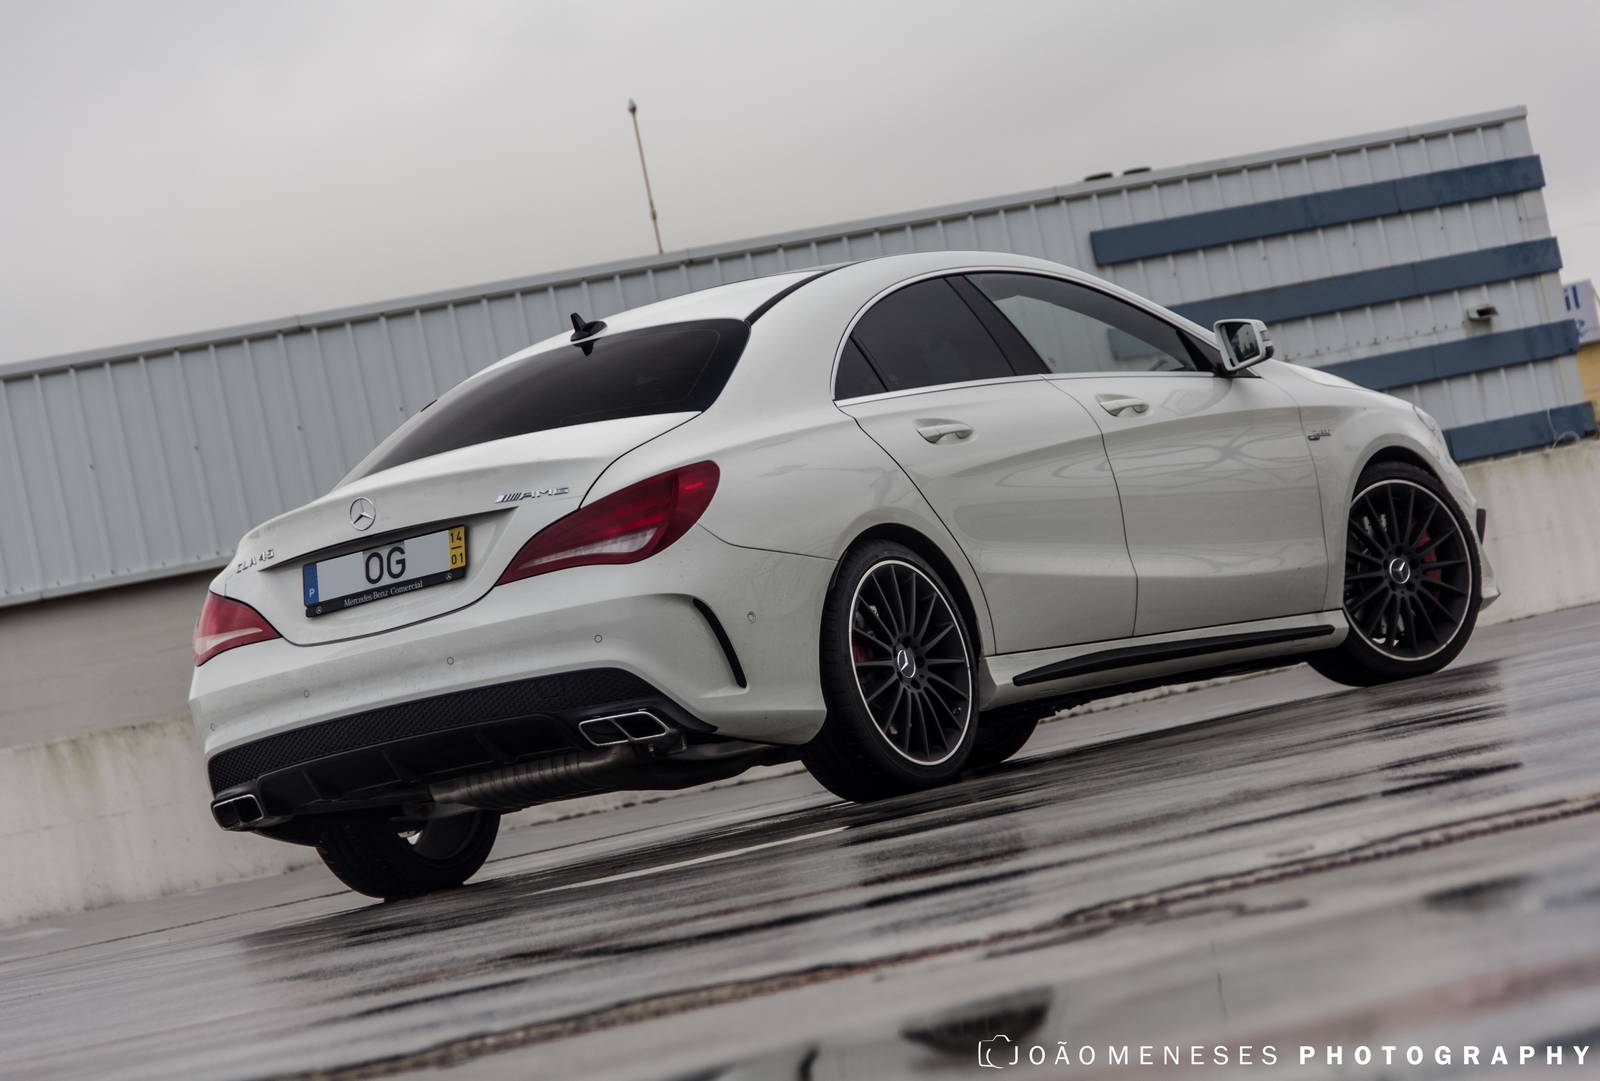 2014 mercedes benz cla 45 amg photoshoot gtspirit for Mercedes benz amg cla 45